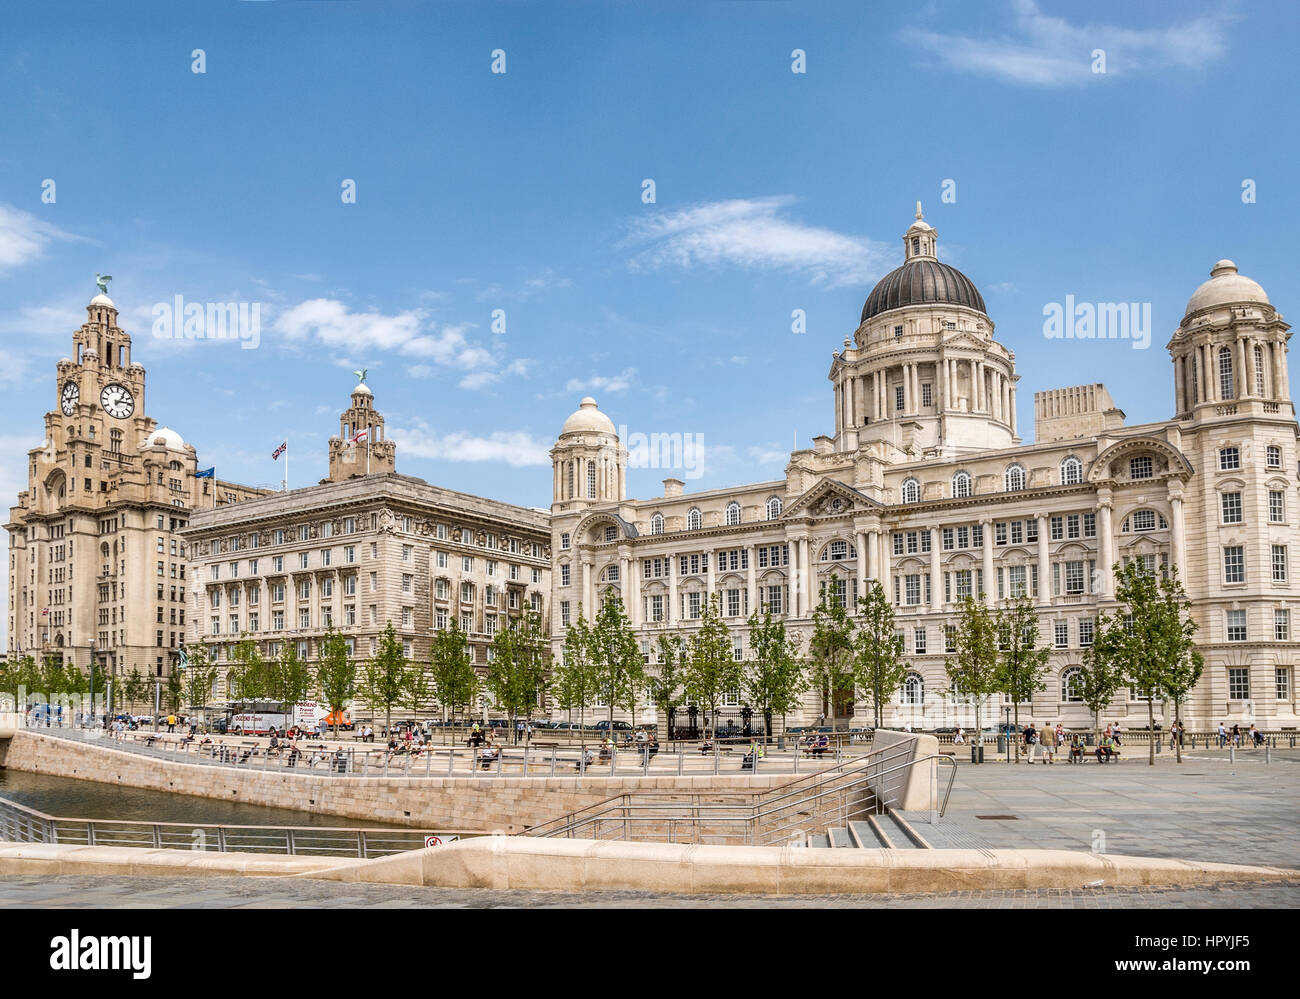 The historic Pier Head riverfront site  in the city centre of Liverpool, England. It encompasses a trio of landmarks, - Stock Image